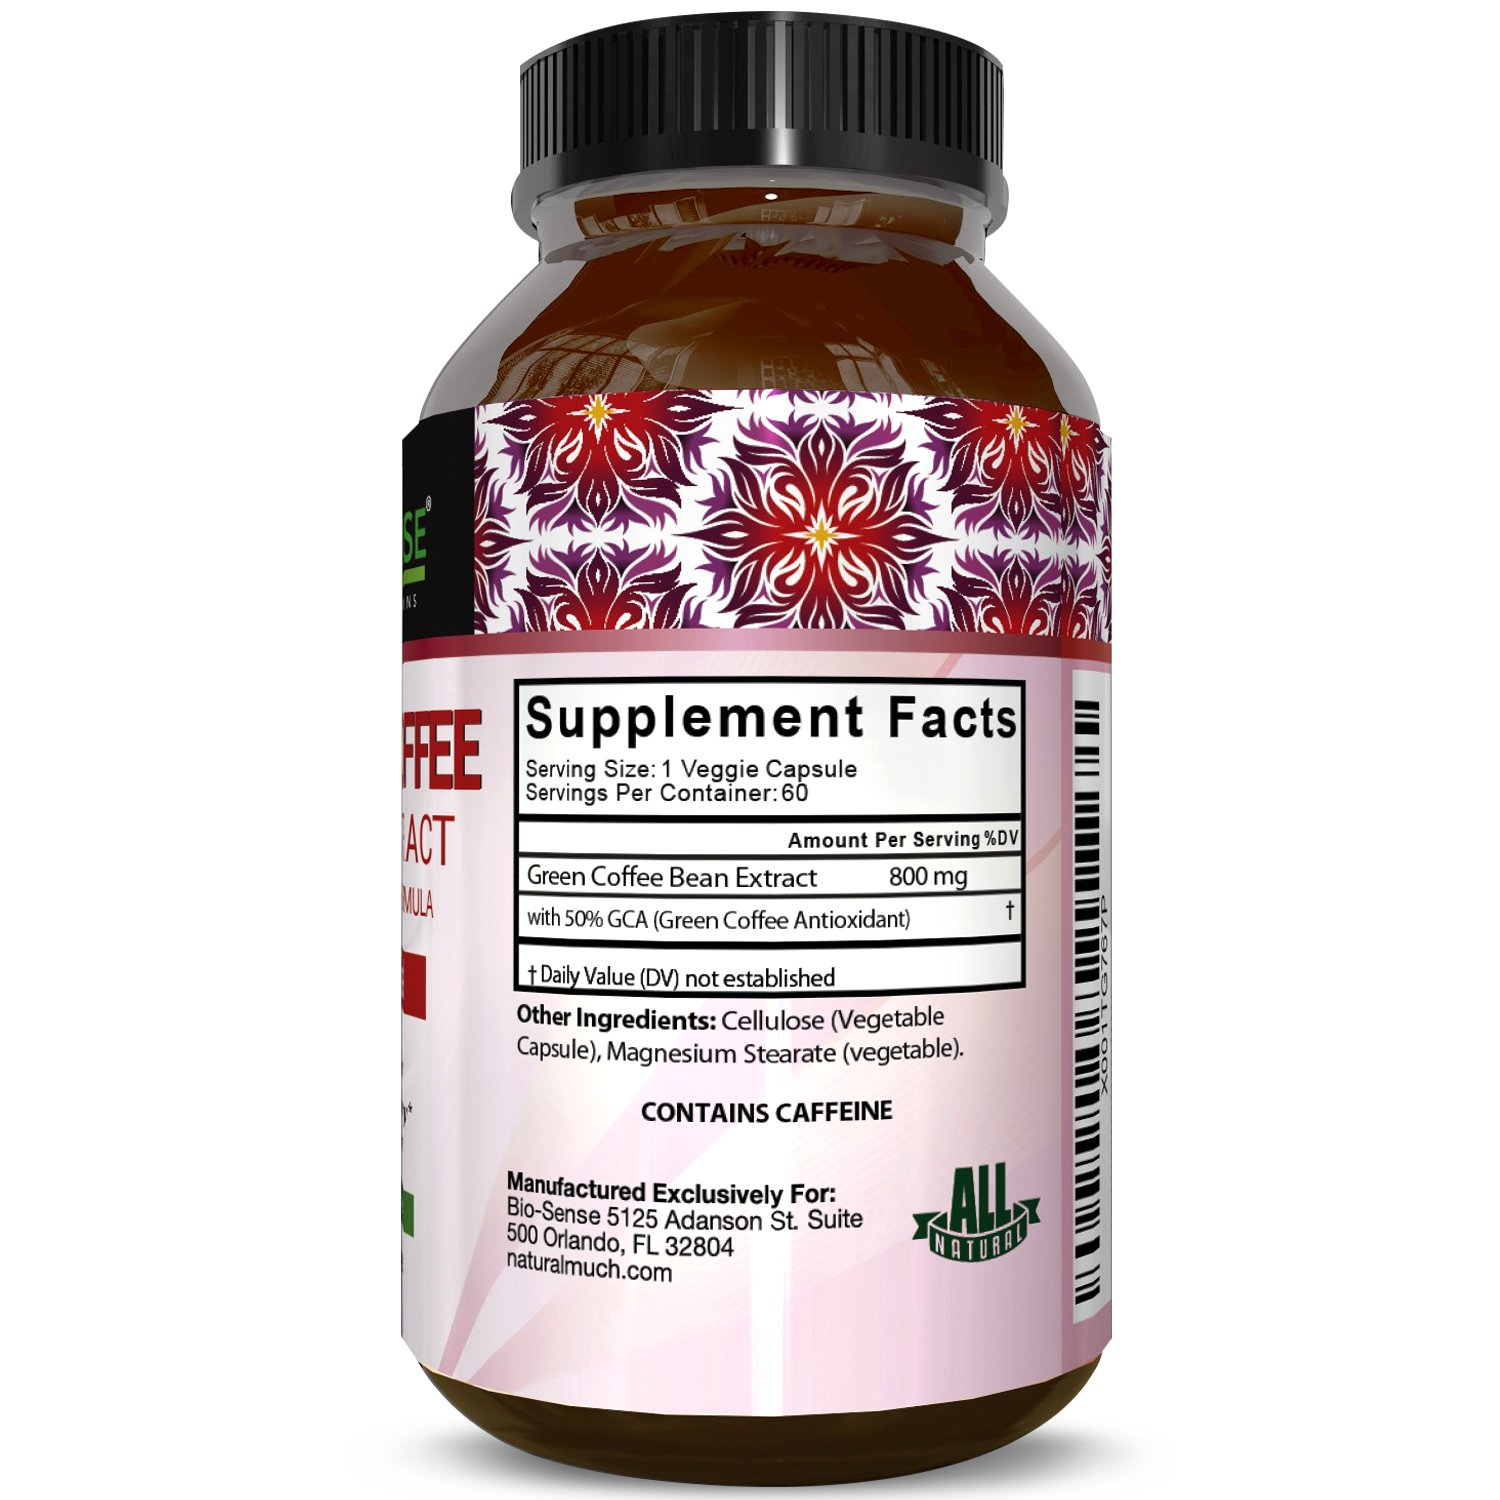 Pure Green Coffee Bean Extract for Weight Loss Pills - Dietary Supplement to Burn Fat Curb Appetite and Boost Metabolism for Men and Women - Contains Antioxidants to Detox and Cleanse - 800mg Capsules by Bio Sense (Image #3)